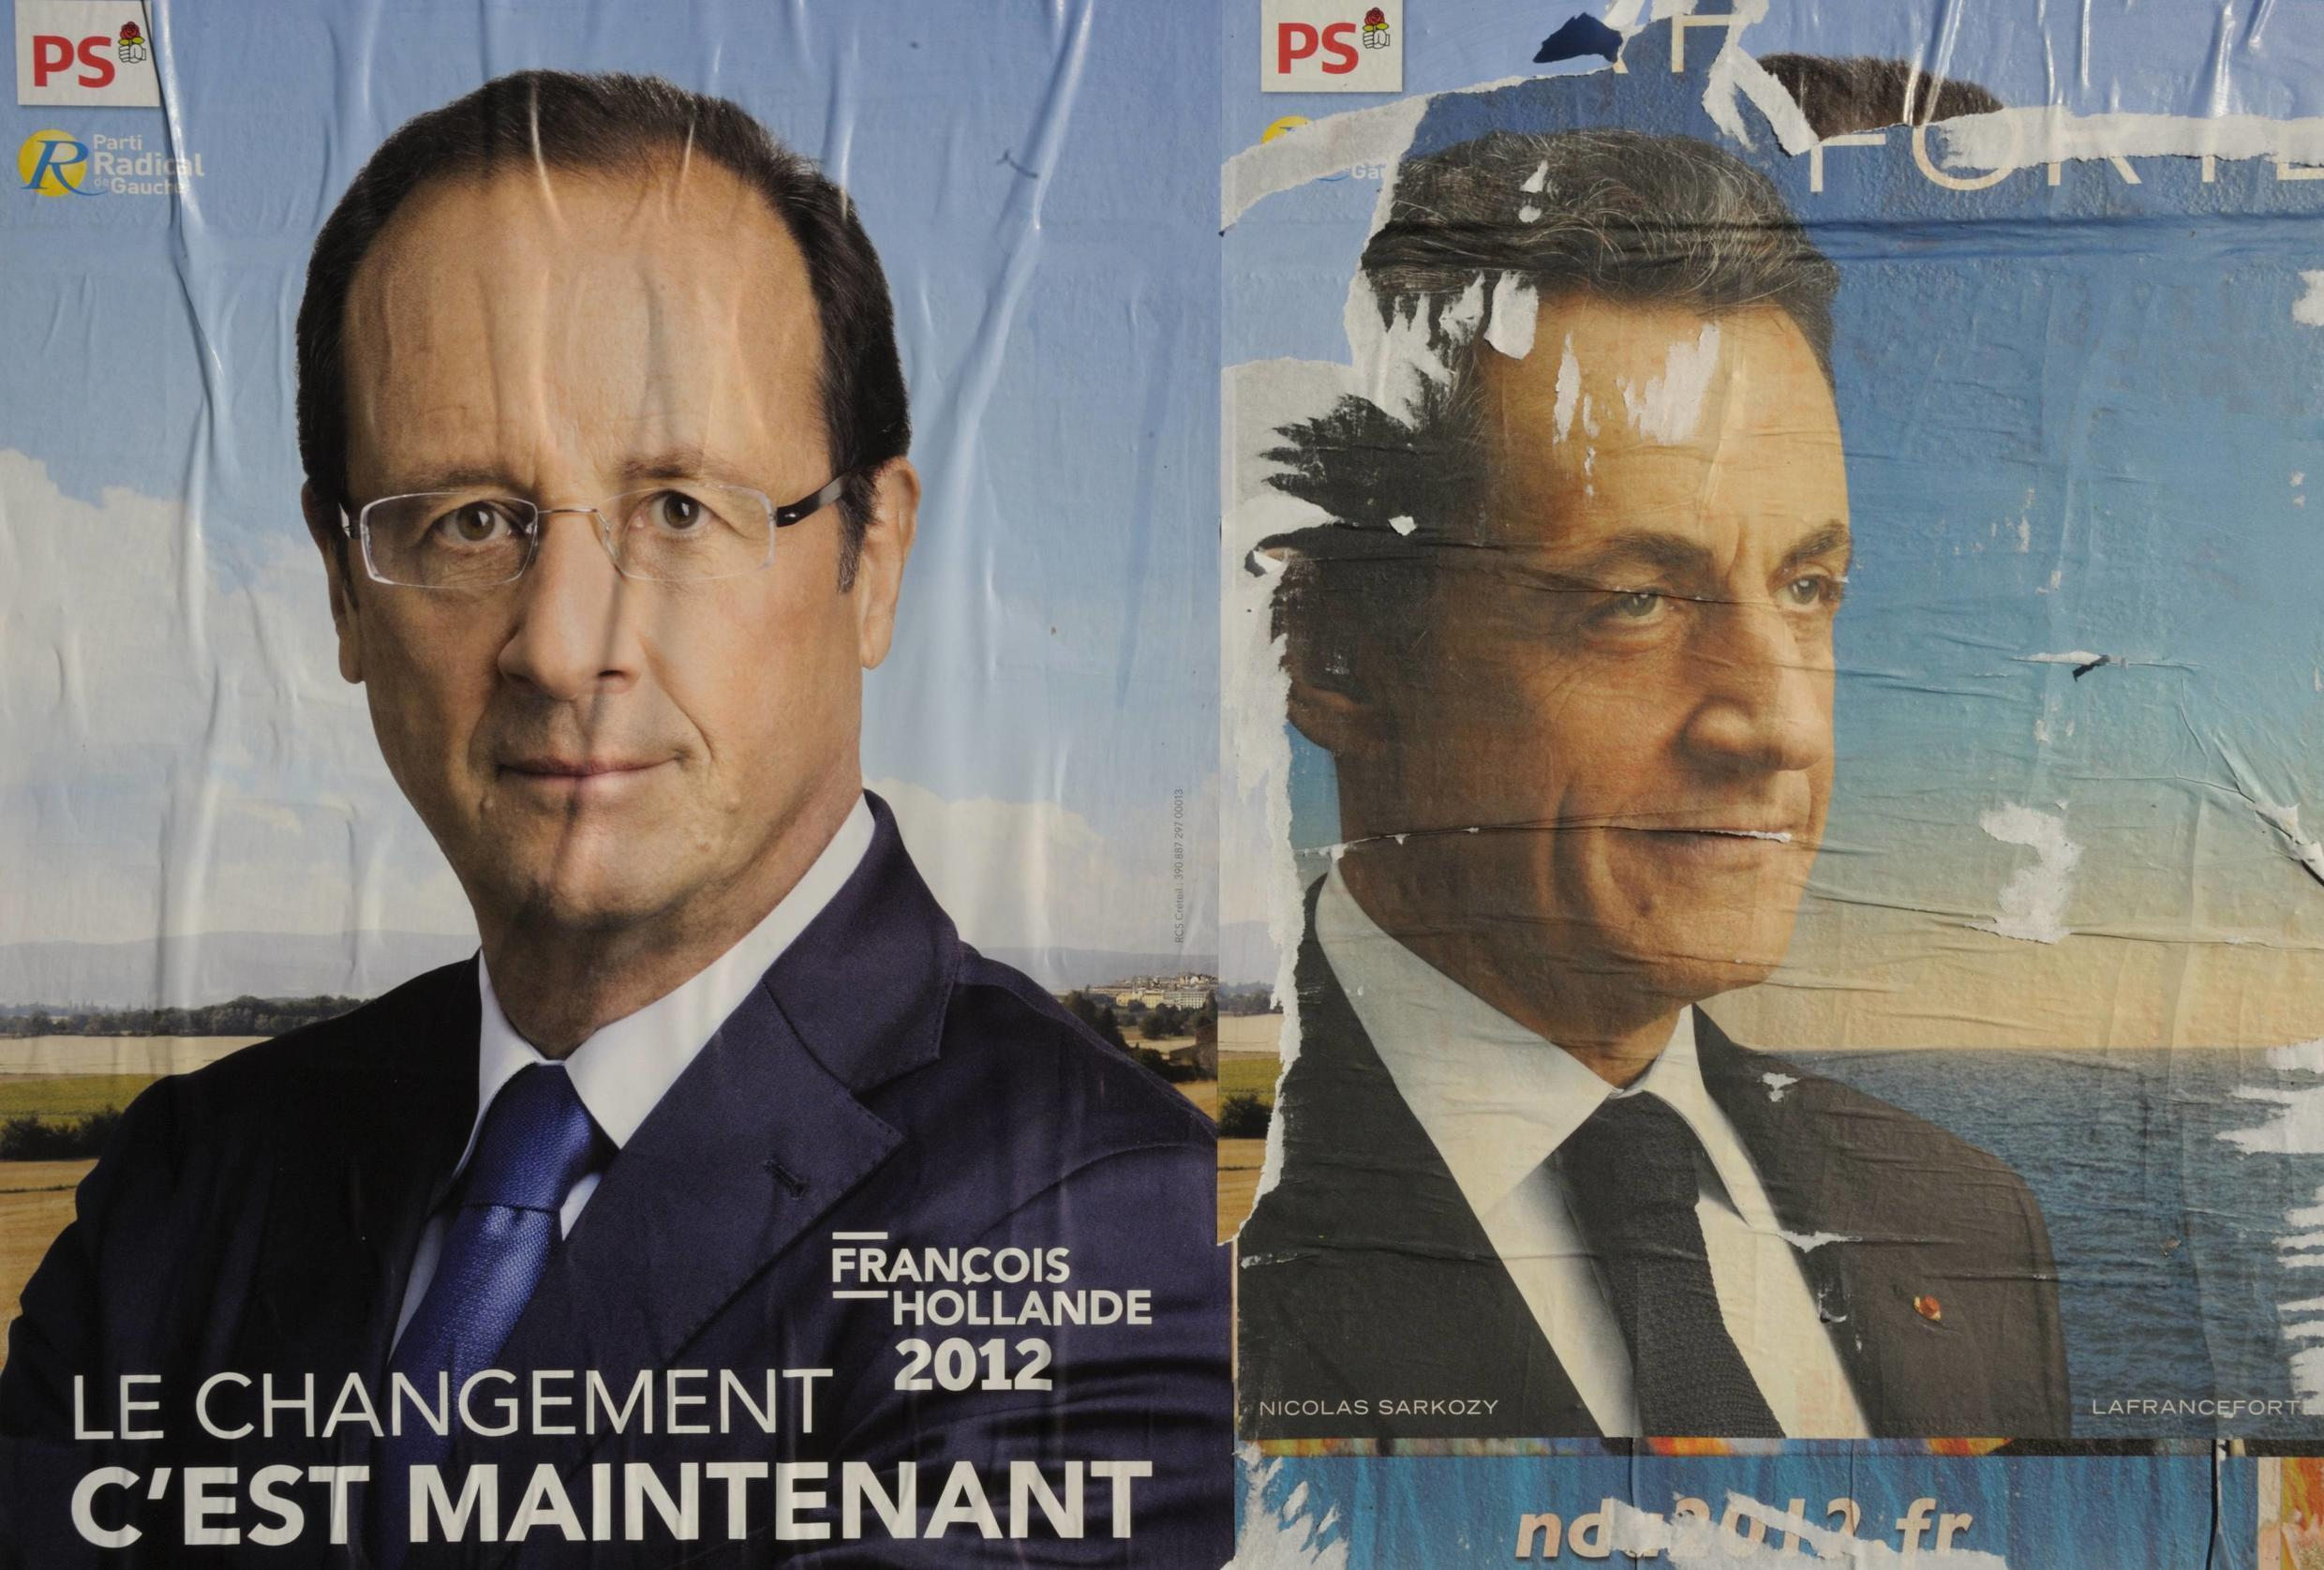 On France 24: Row over exit polls engulfs French presidential election